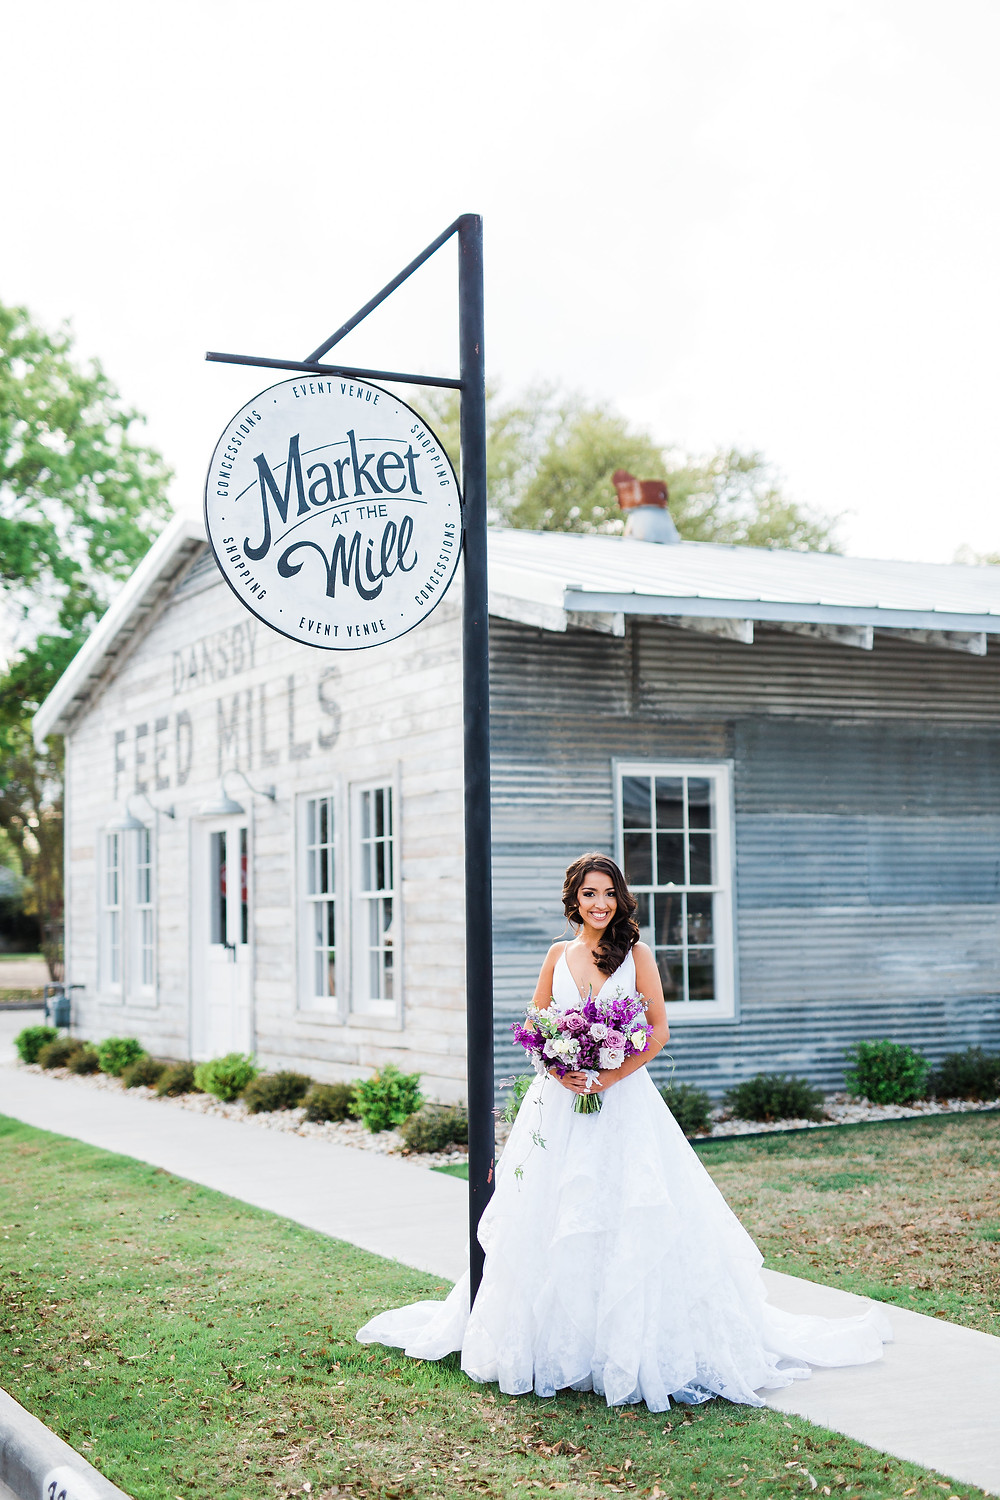 Lauren Crose Photography - Market at the Mill